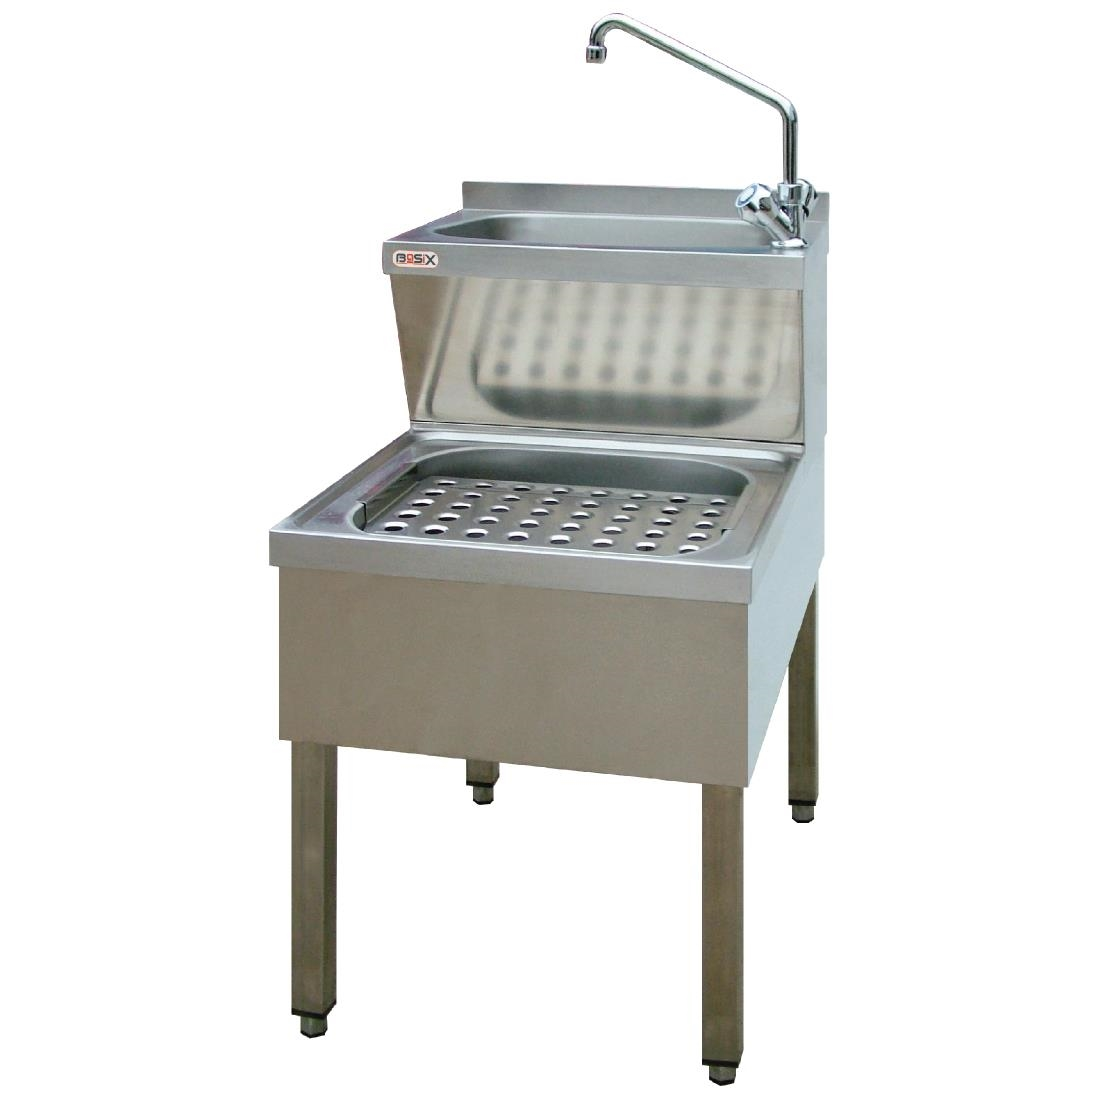 Image of Basix Stainless Steel Janitorial Sink